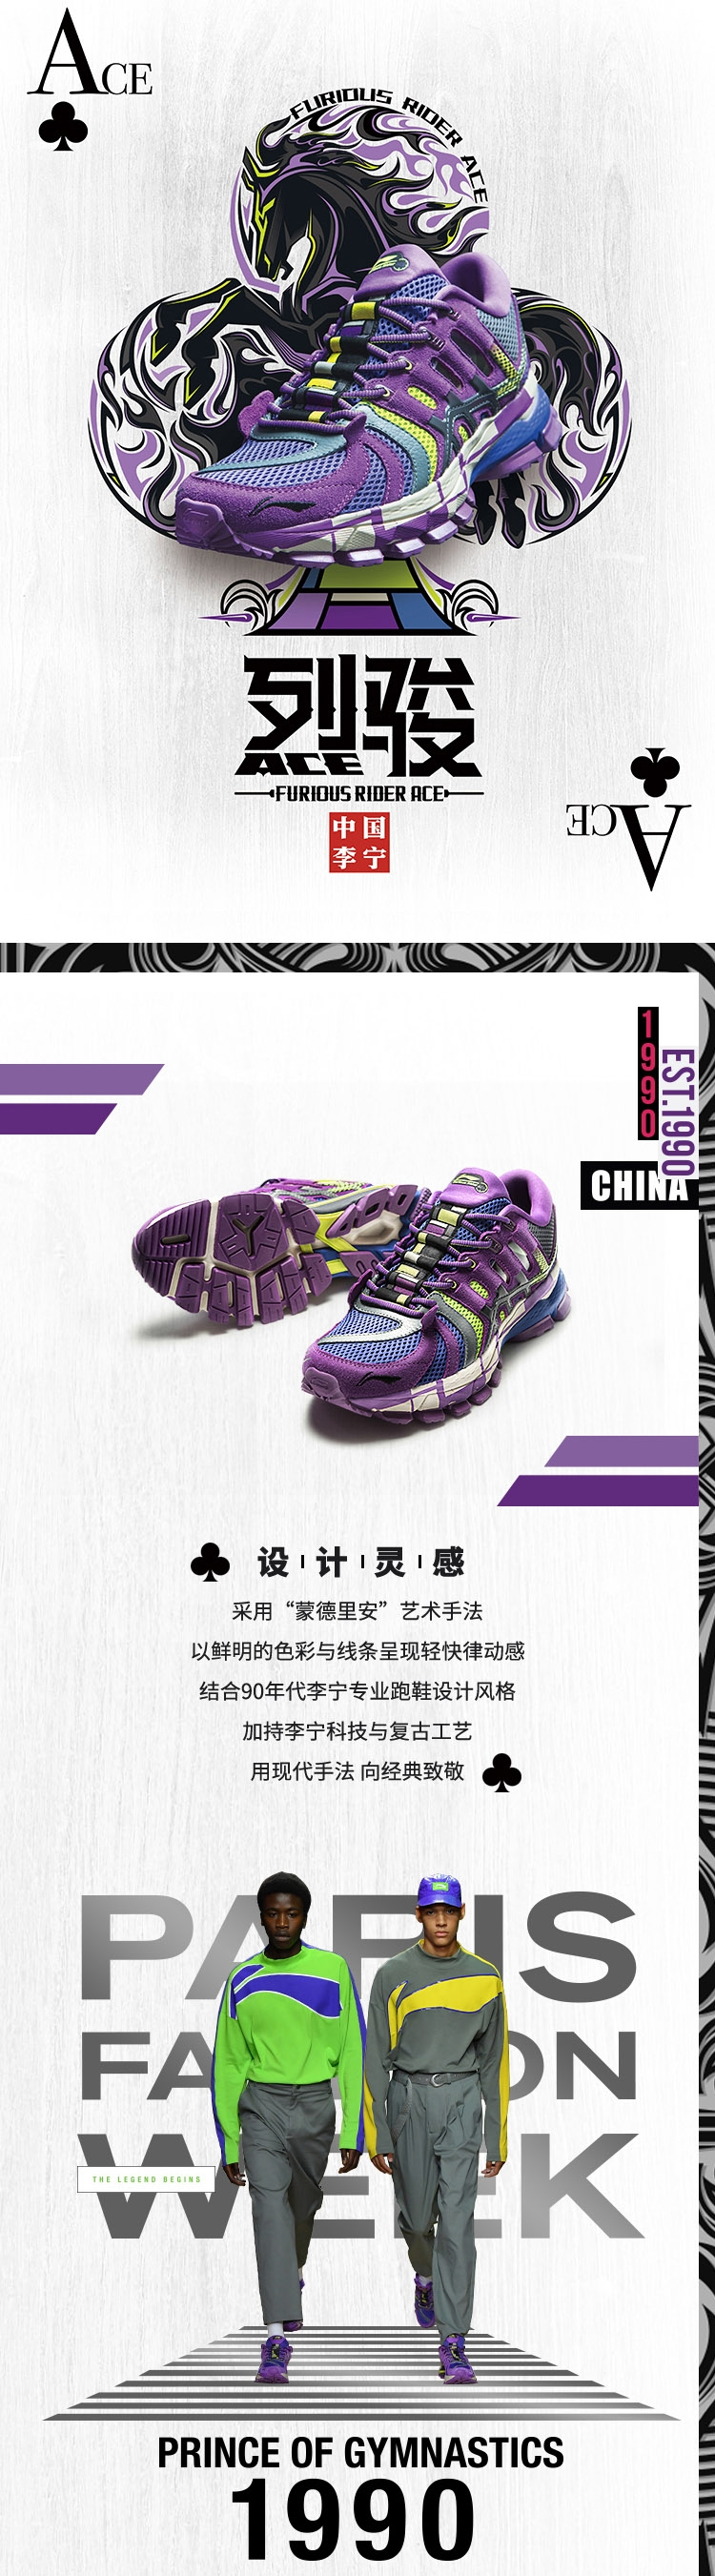 Paris Fashion Week FURIOUS RIDER ACE | China Li-Ning Men's Stable Running Shoes - Purple [ARZN005-8]